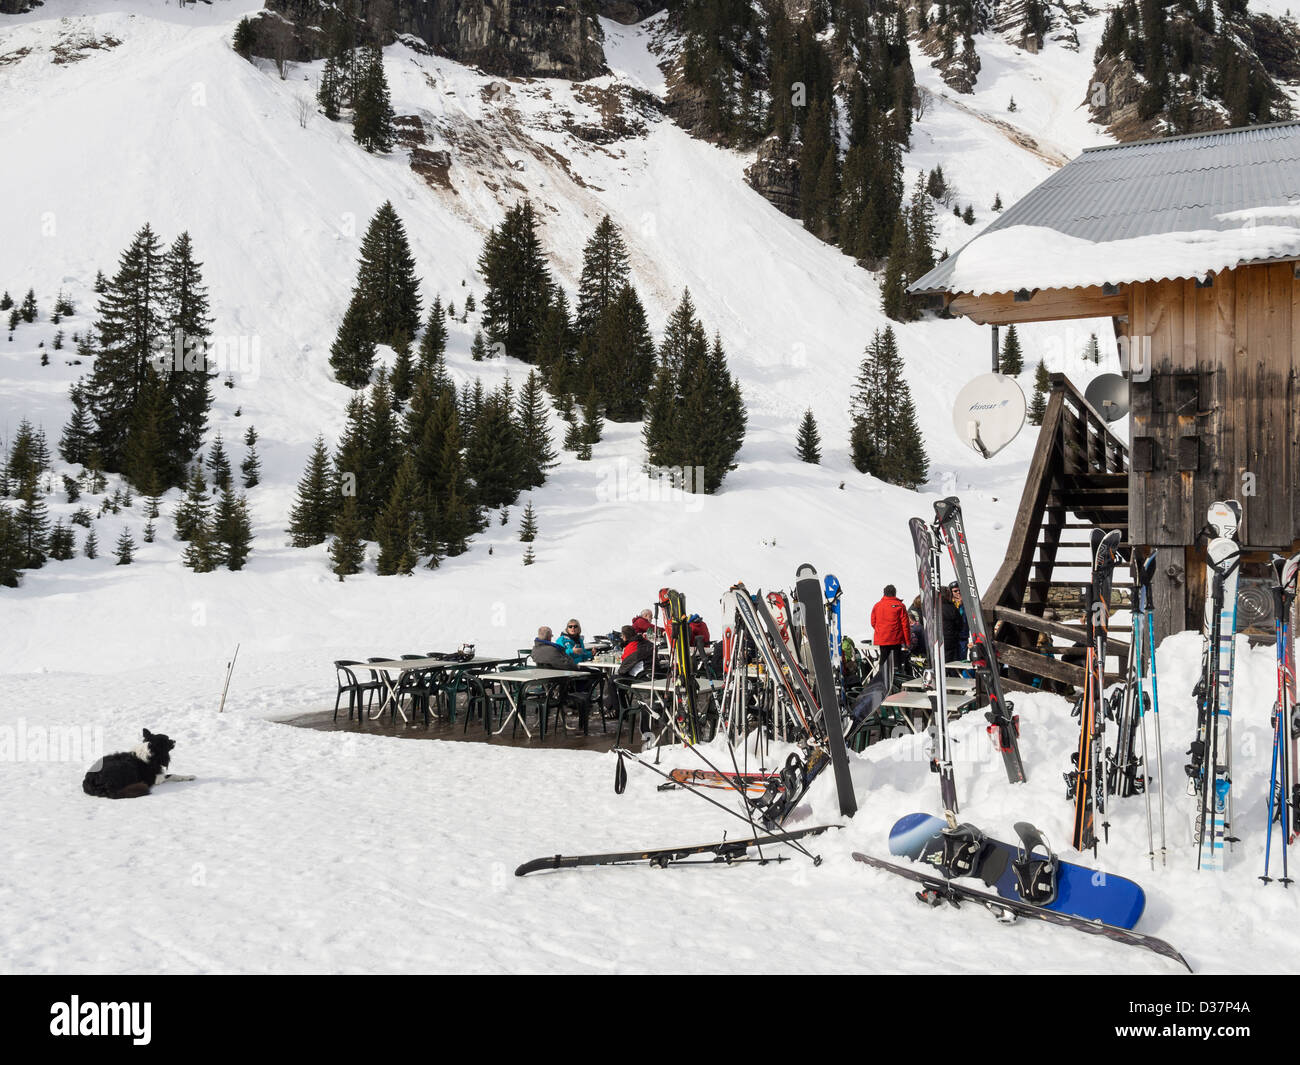 Skis and people outside Gite du Lac de Gers lakeside ski restaurant in Le Grand Massif in French Alps near Sixt - Stock Image